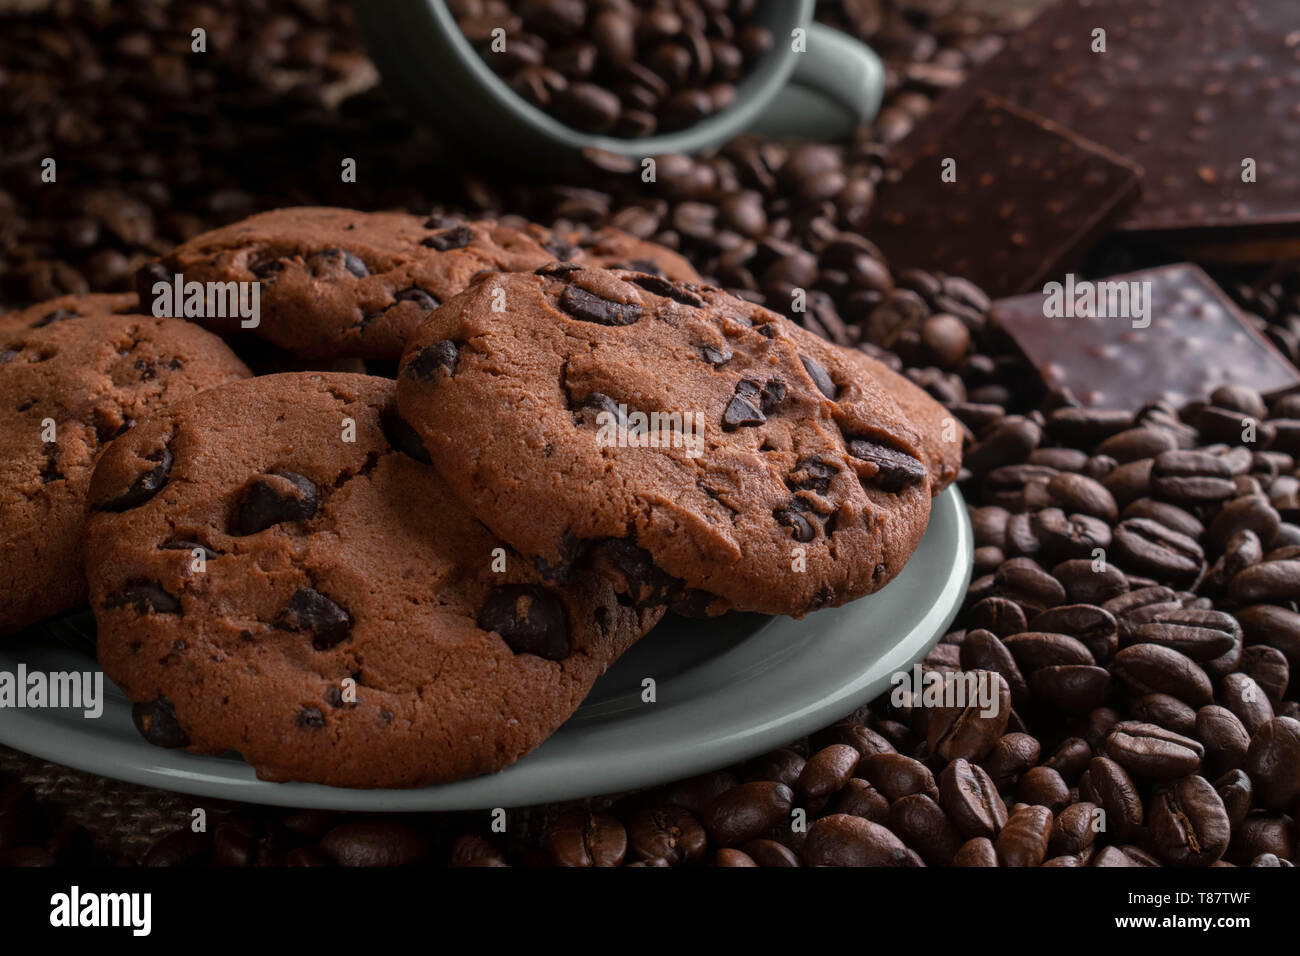 on coffee beansthe cup lies from it gets enough sleep coffee, opposite a chocolate bar, there are cookies behind - Stock Image